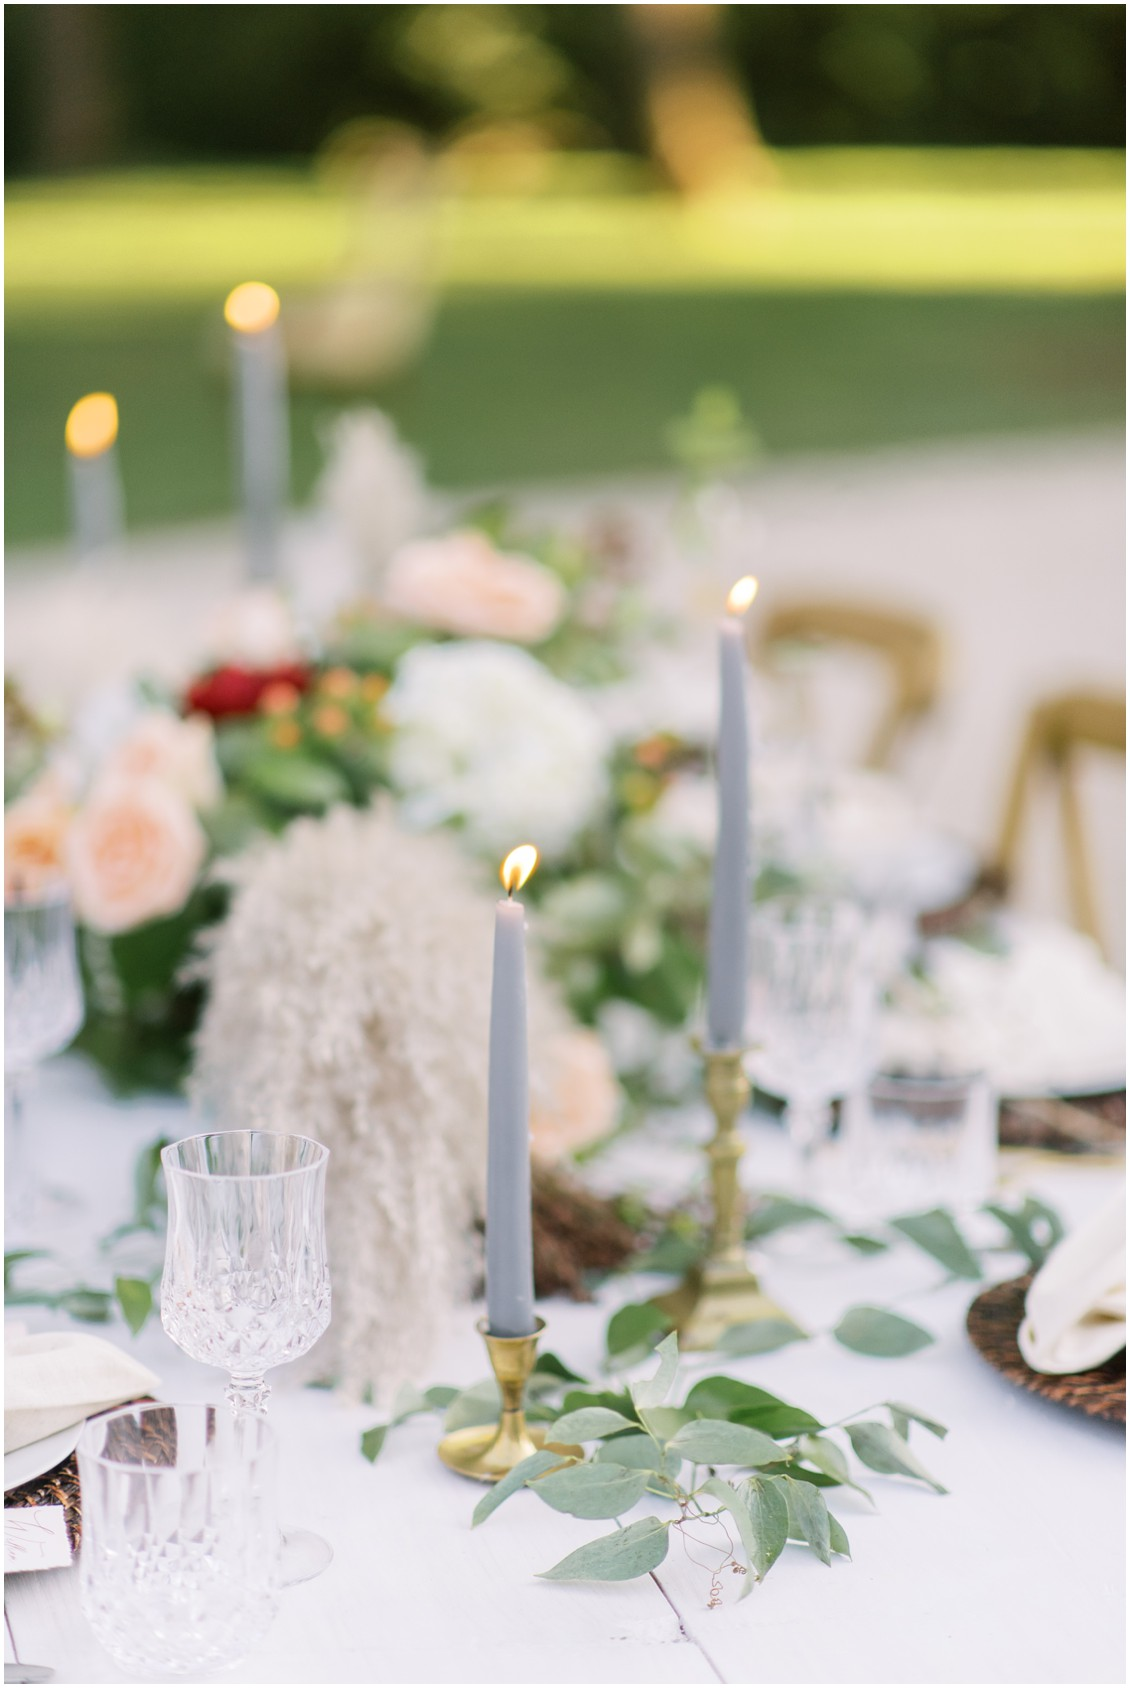 Detail of tablescape with greenery and grey tapered candles| My Eastern Shore Wedding | Hannah Belle Events | Eastern Shore Tents and Events